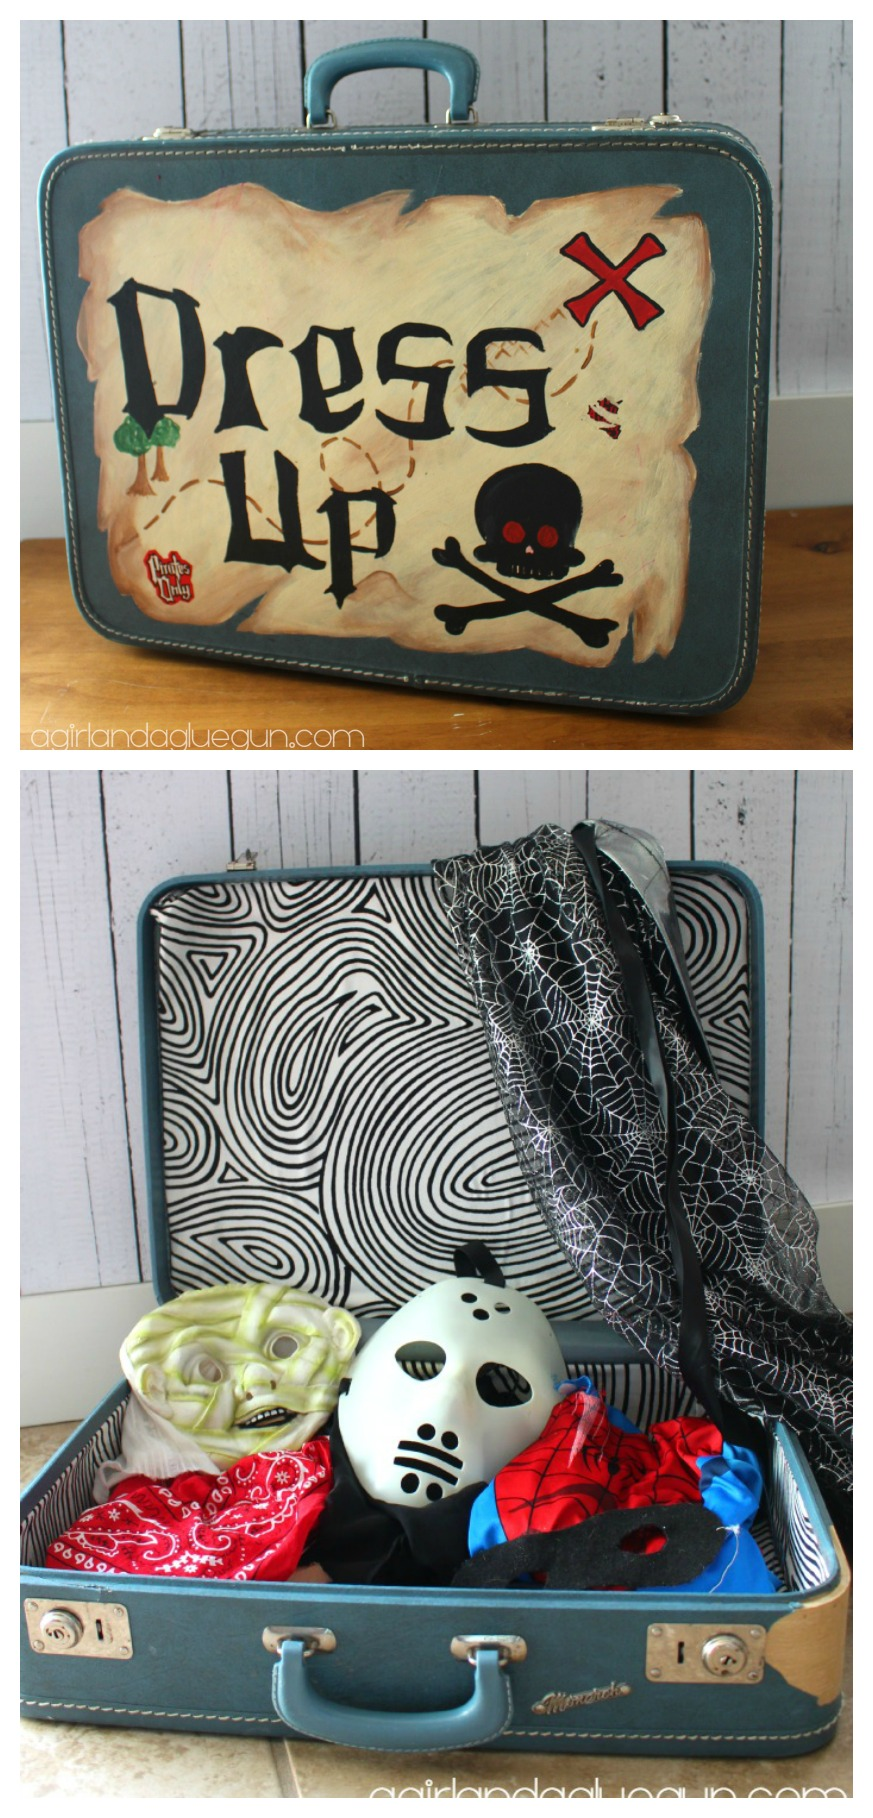 Dress Up Trunk From Old Suitcase - DIY Dress Up Solutions on www.kidslovedressup.com